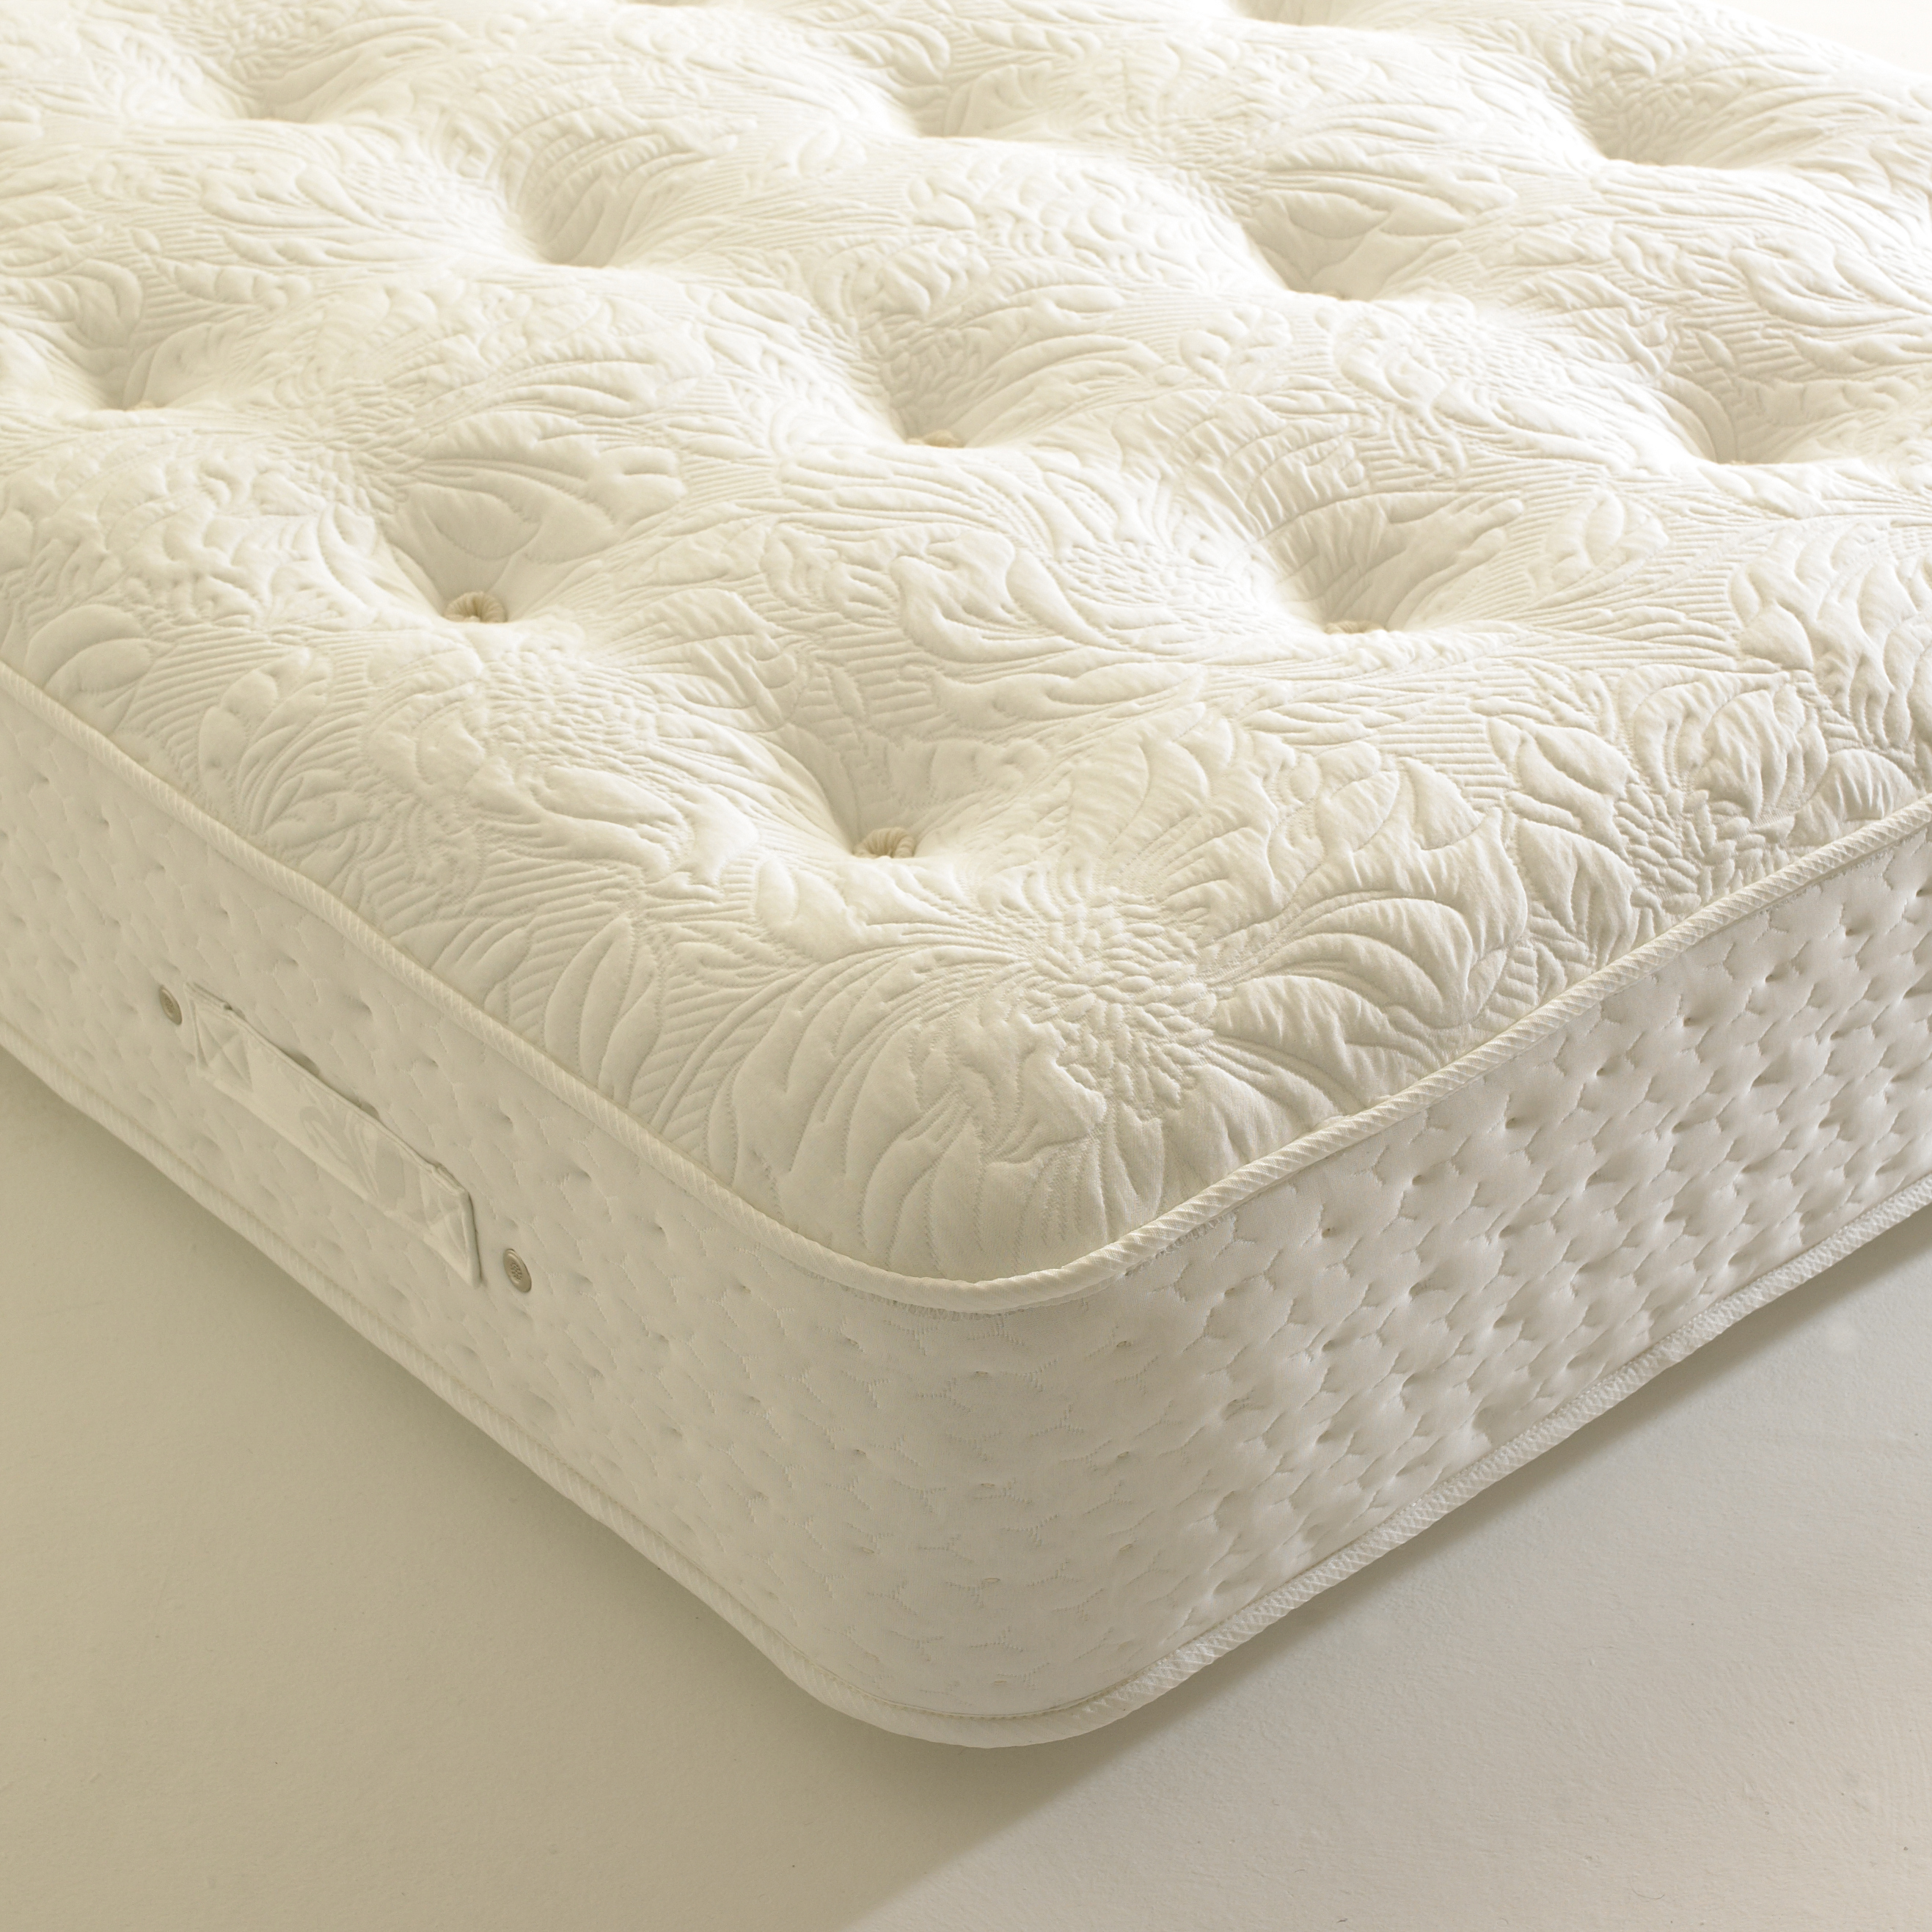 Shire Eco Sound Anti Bug 2000 Pocket Sprung Mattress from £329